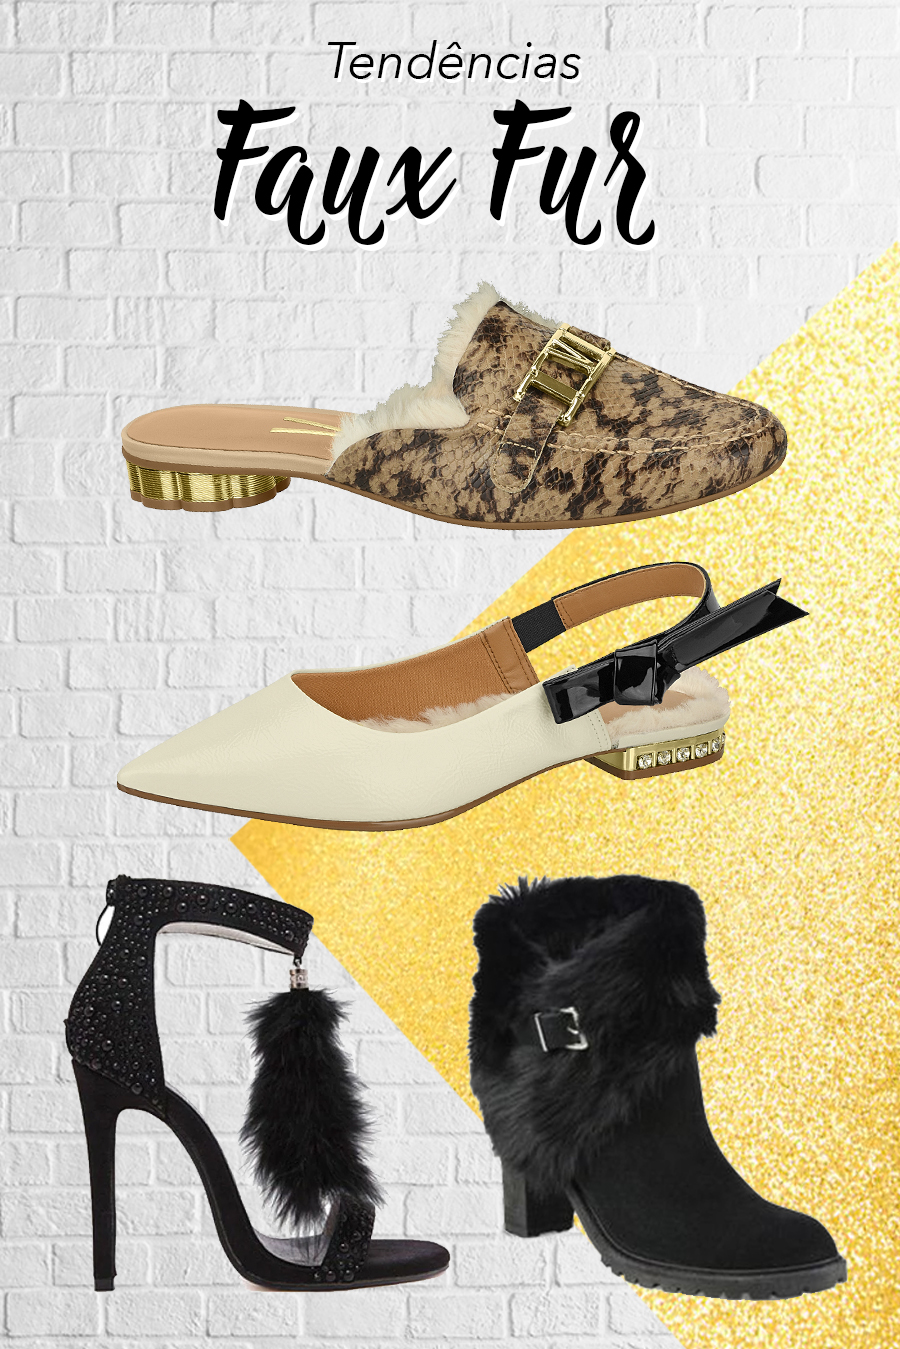 tendencias_sapatos_faux_fur_inverno